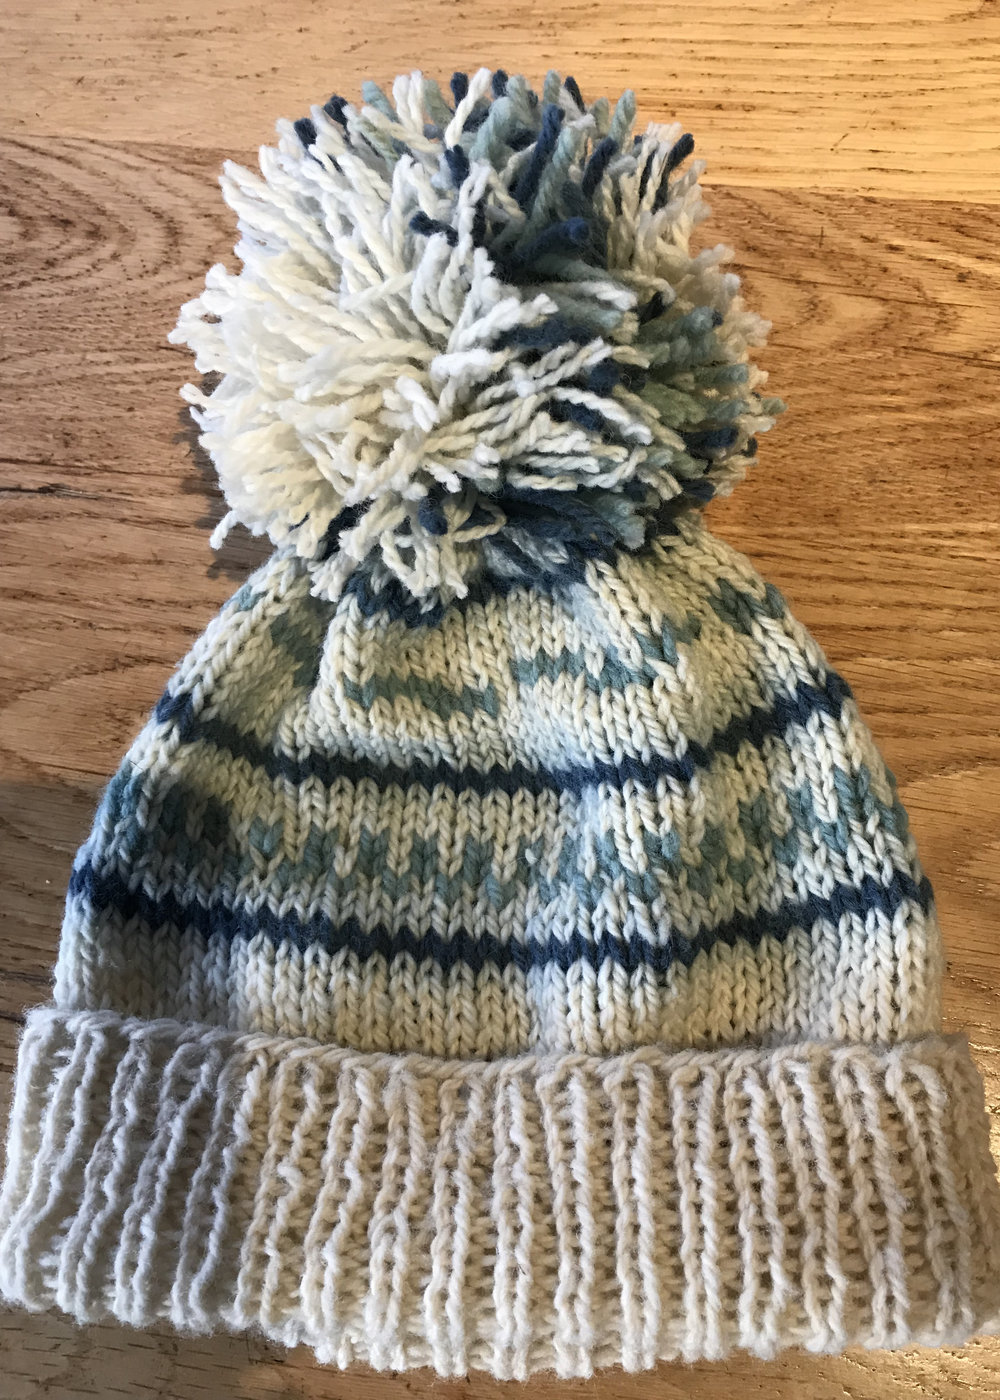 Gwen's warm and cozy hat.